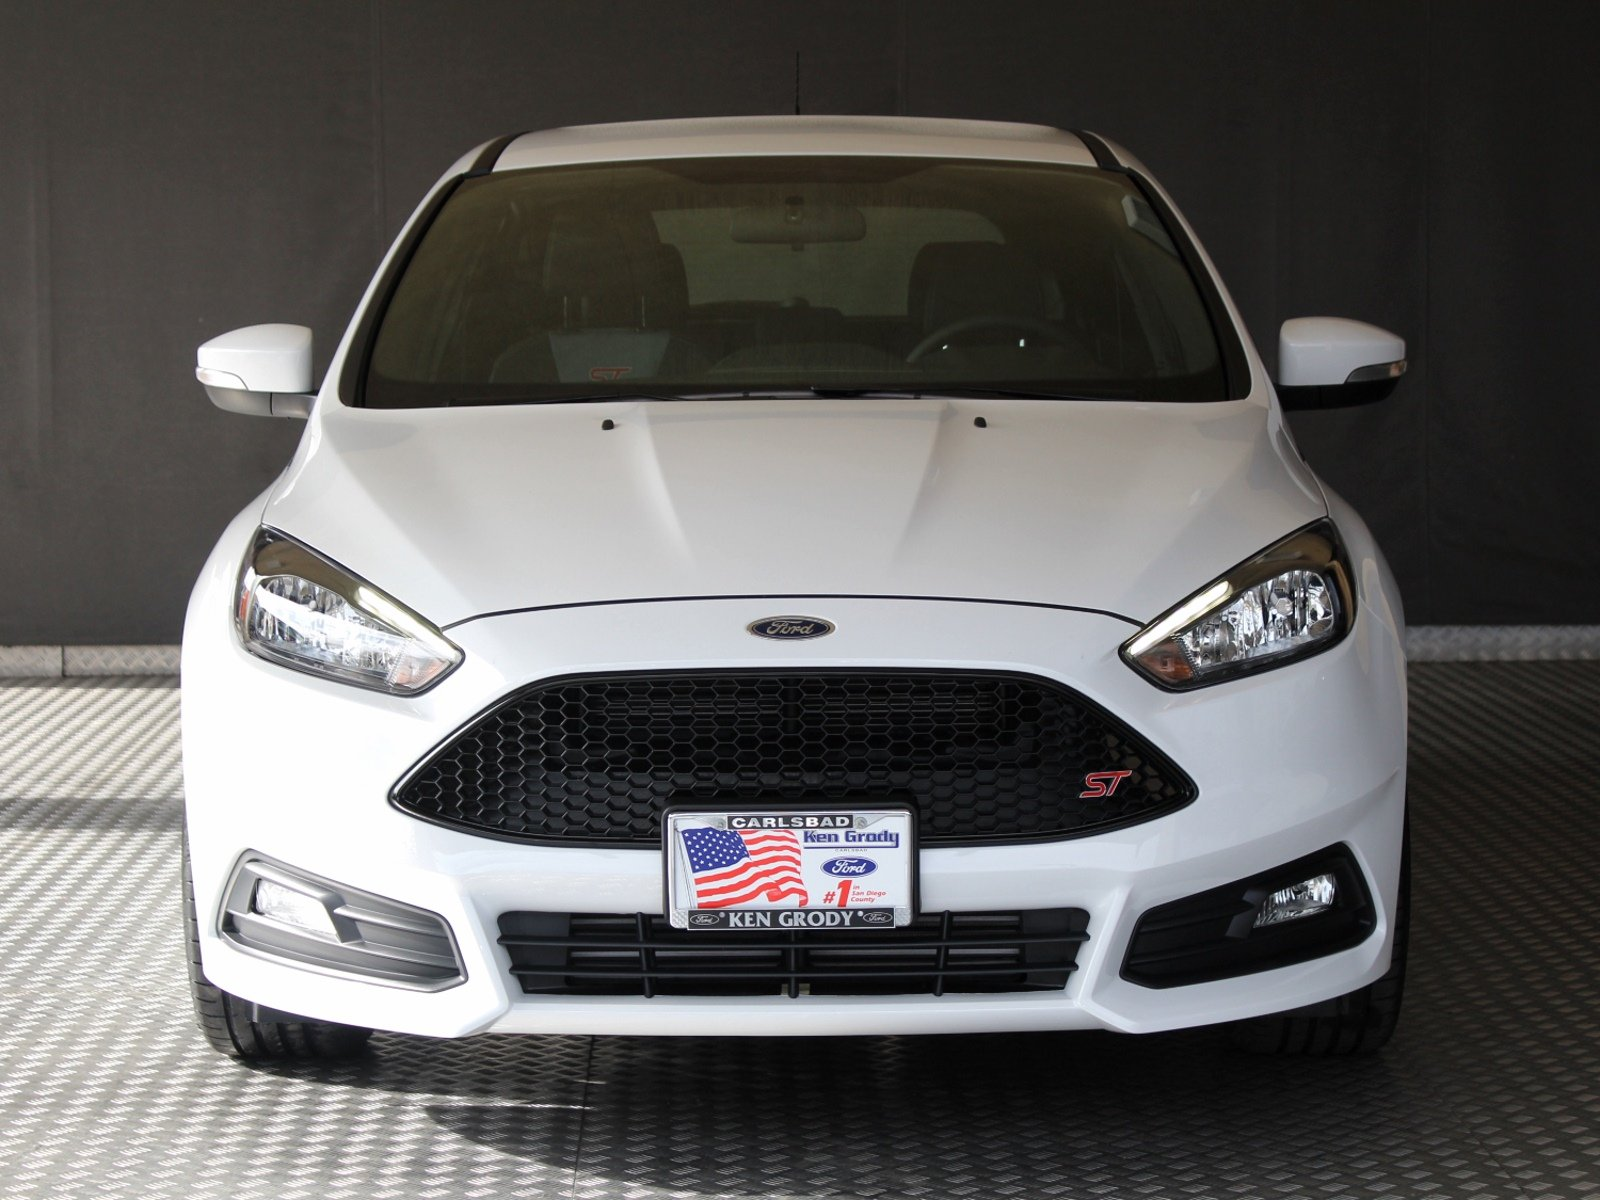 New 2017 Ford Focus ST Hatchback in Carlsbad 88418  Ken Grody